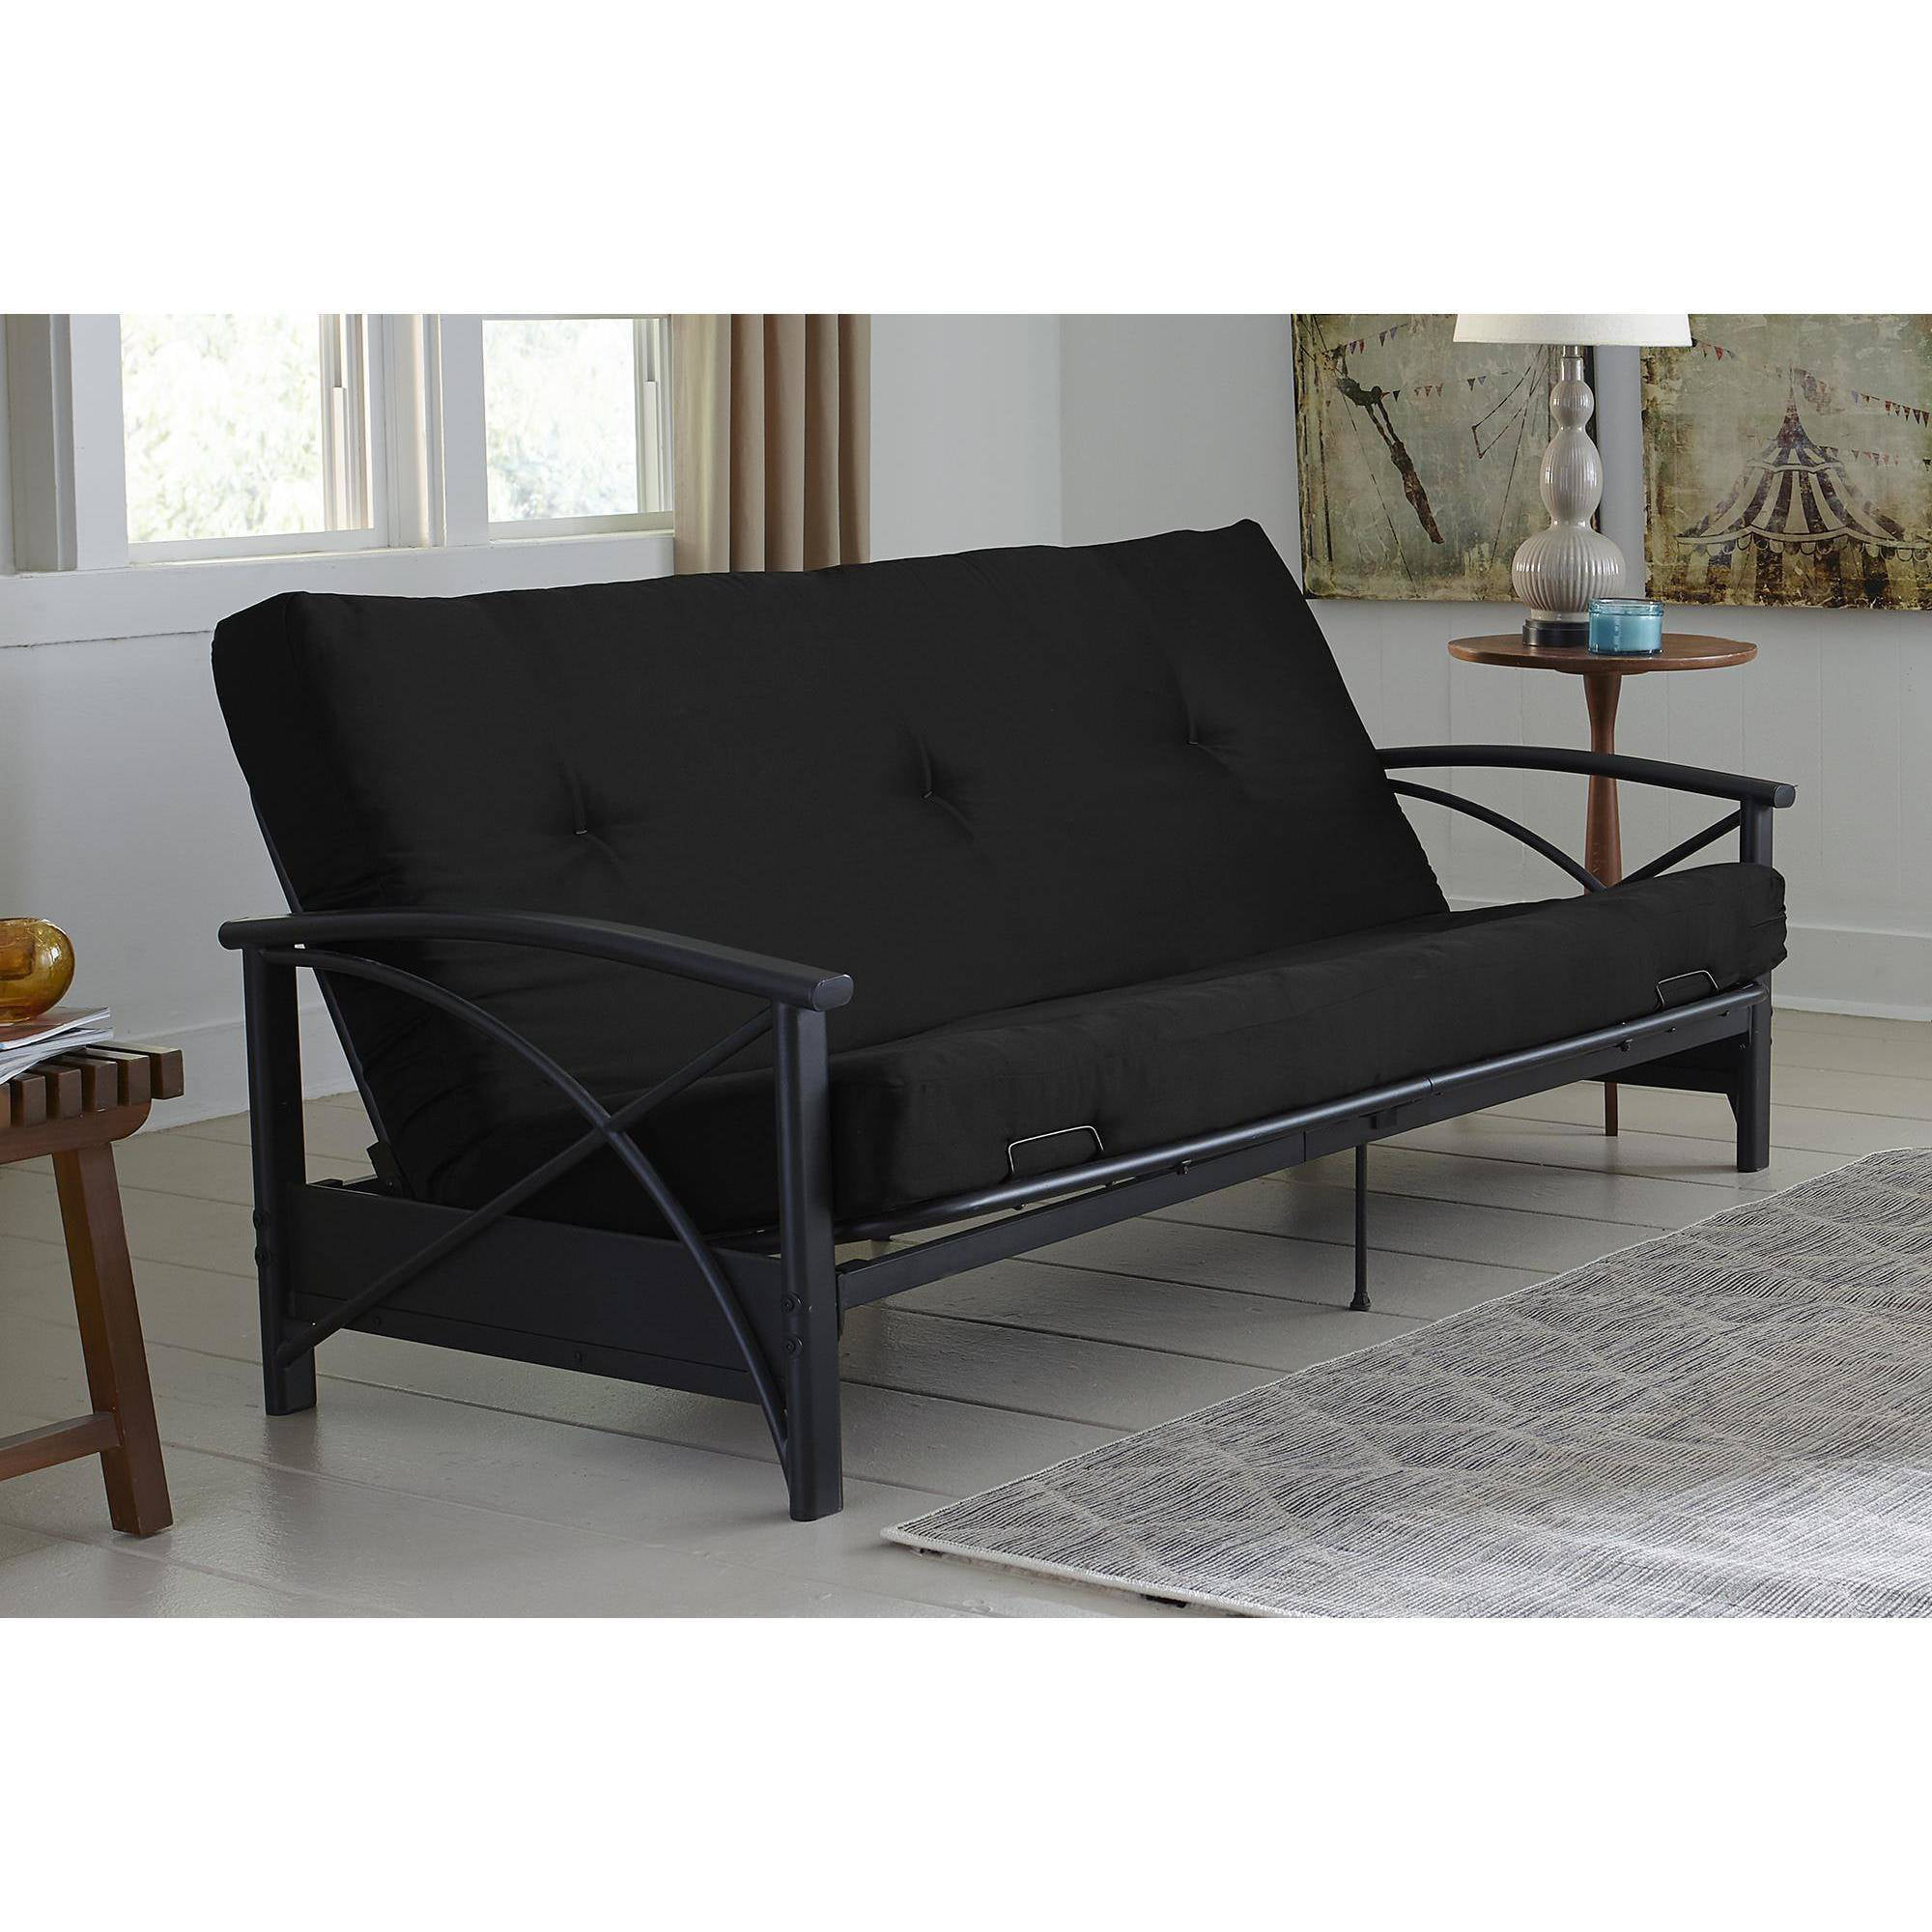 futon dhp sourceimage eng living wood furniture details with hudson futons mattress room arm products brown